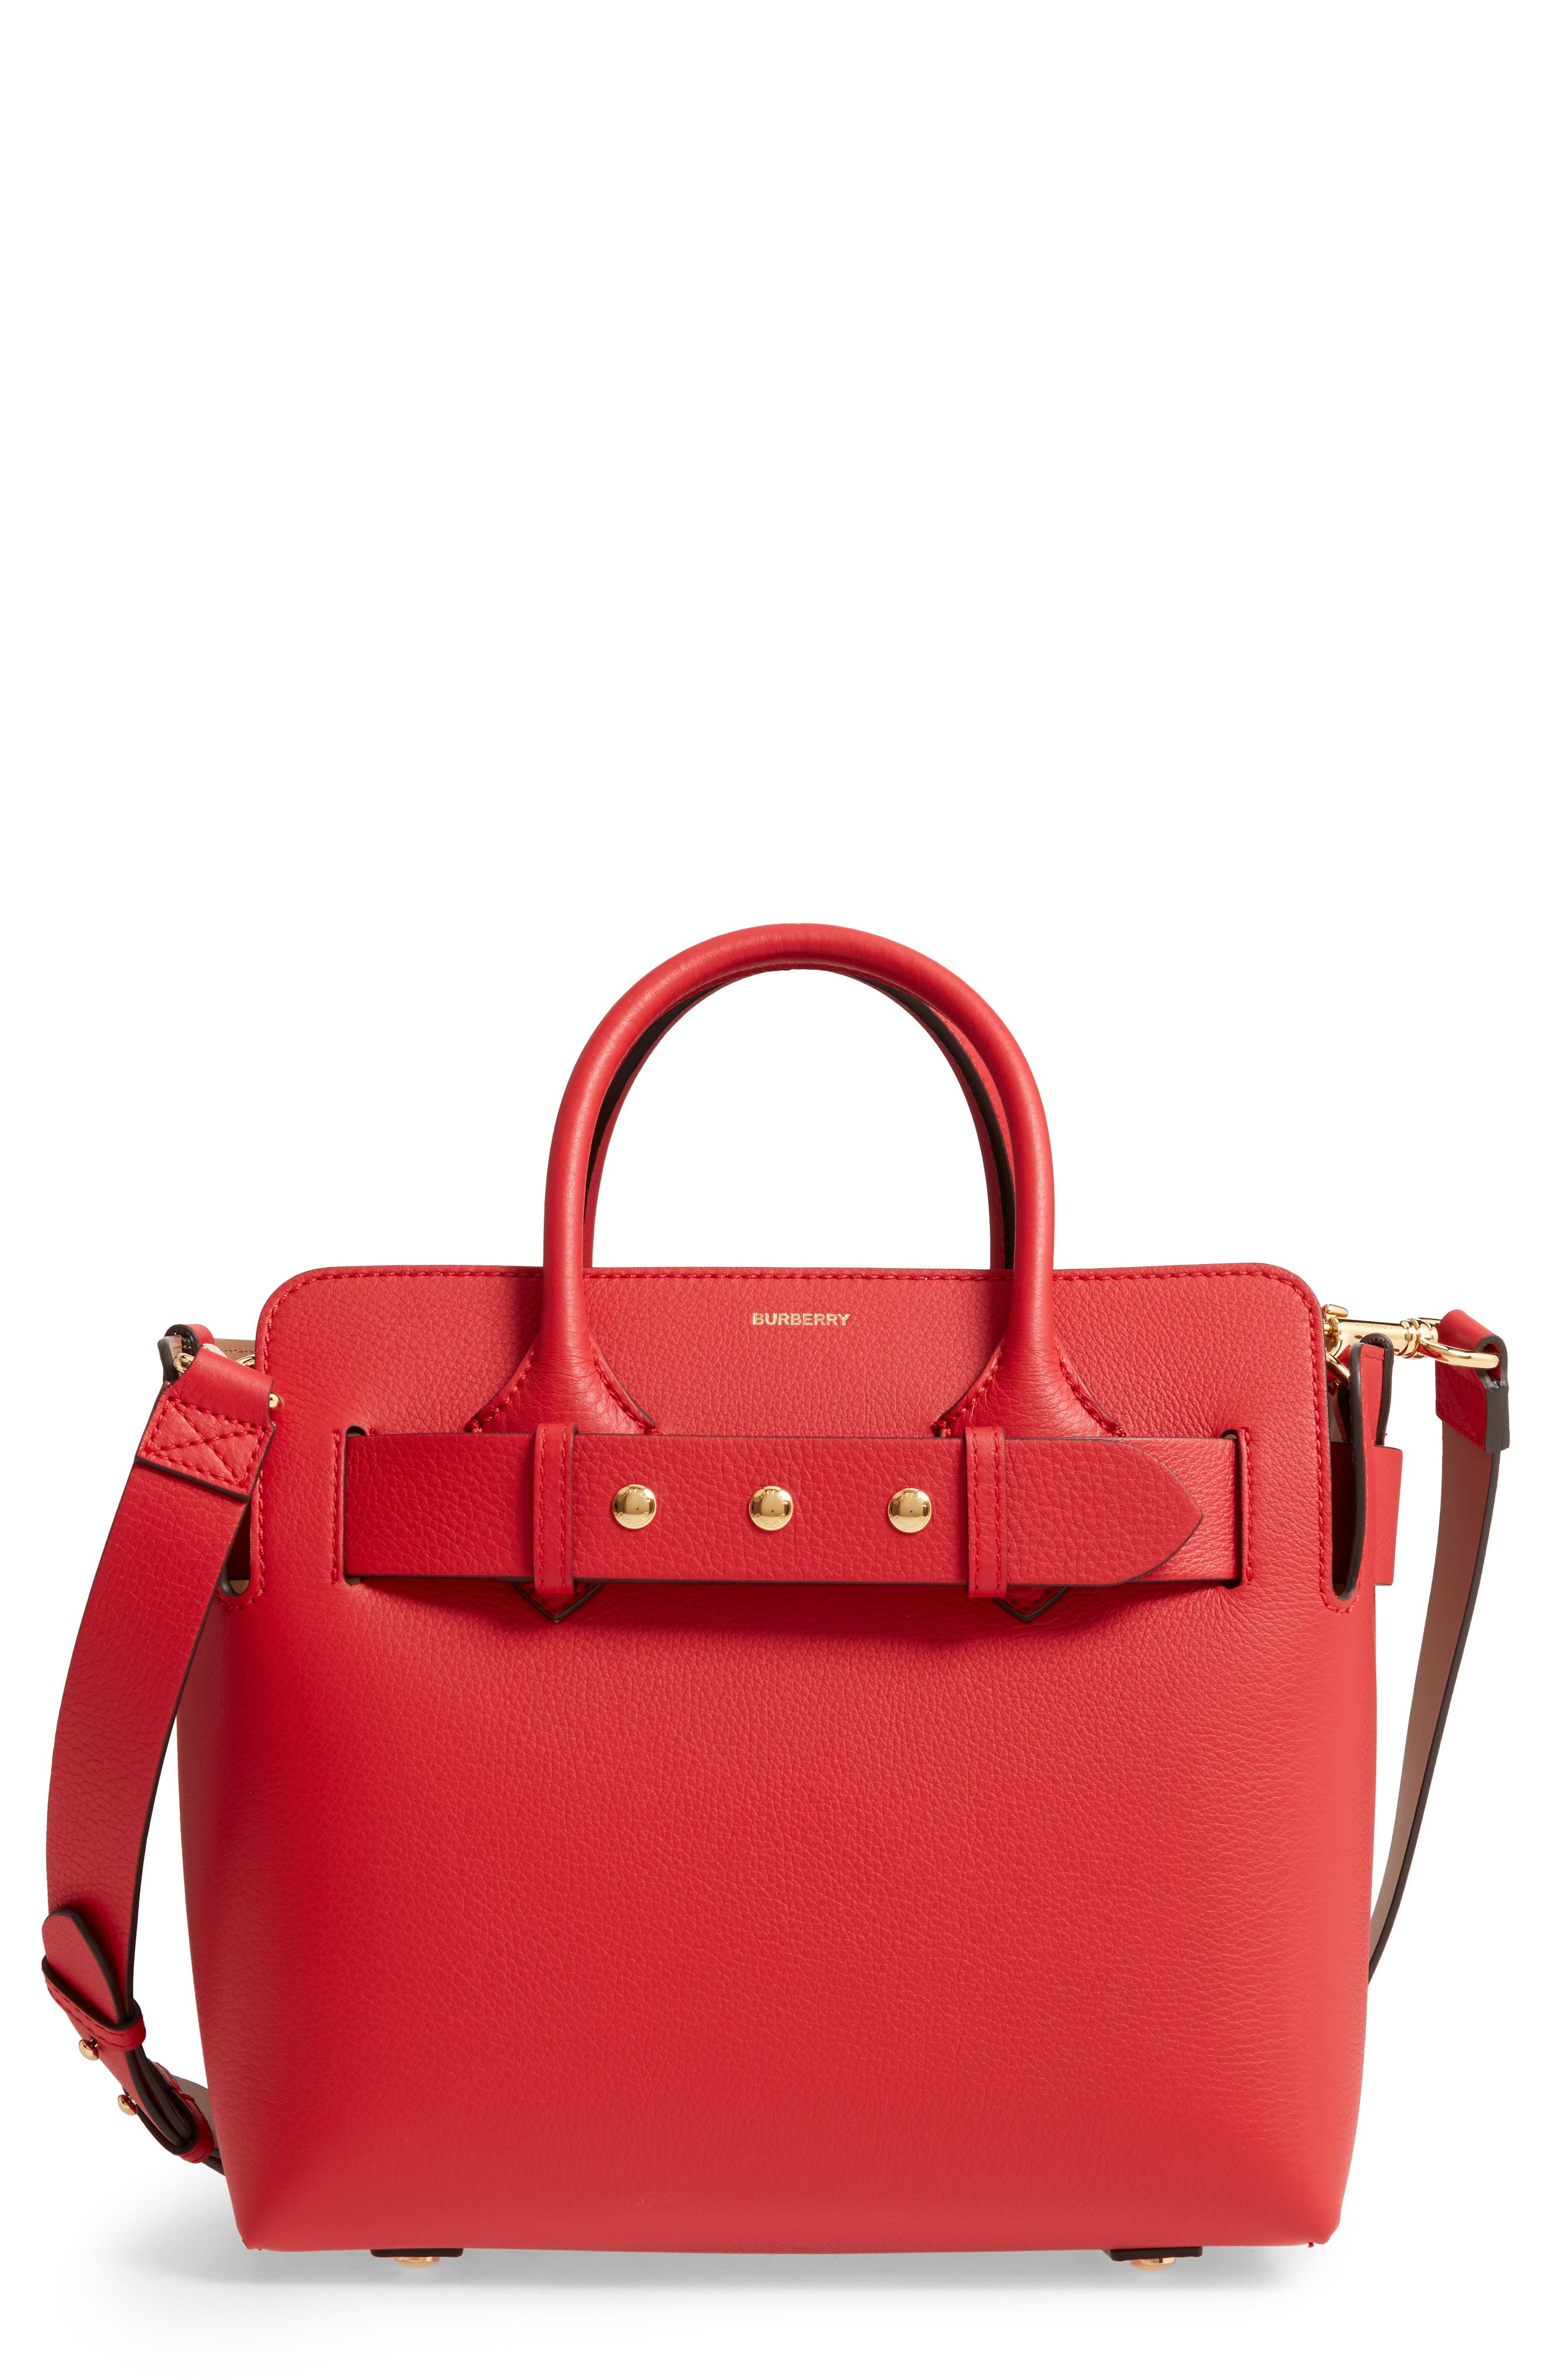 BURBERRY,                             Small Belt Leather Satchel,                             Main thumbnail 1, color,                             BRIGHT MILITARY RED